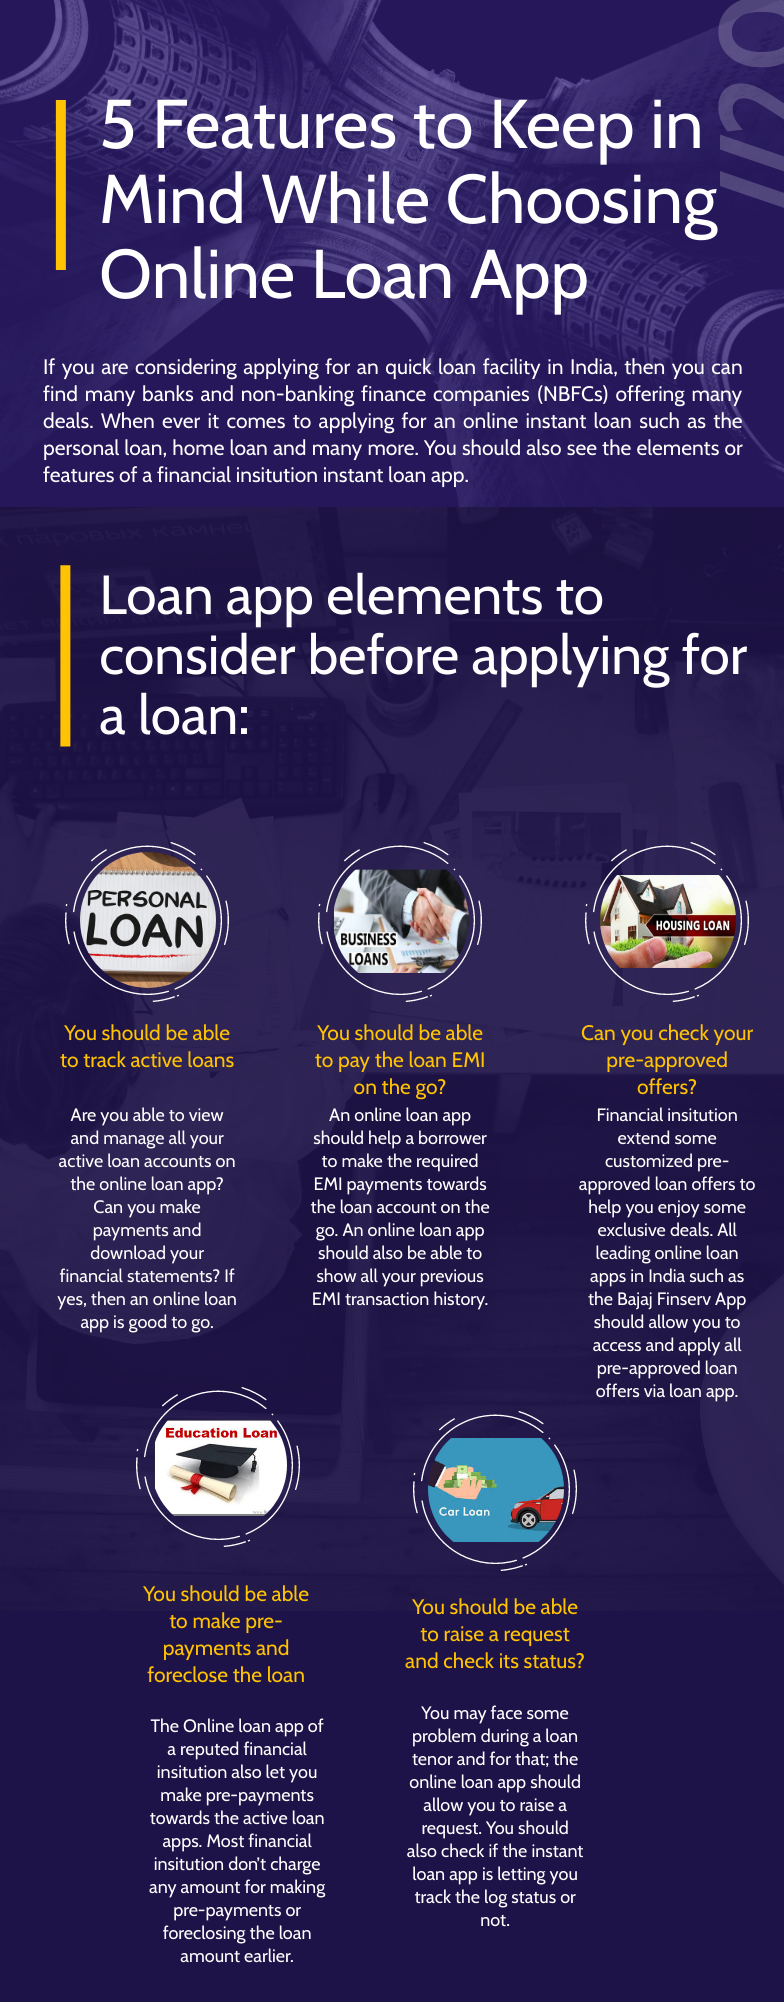 Keep These 5 Features While Choosing Online Loan App In 2020 Online Loans App Instant Loans